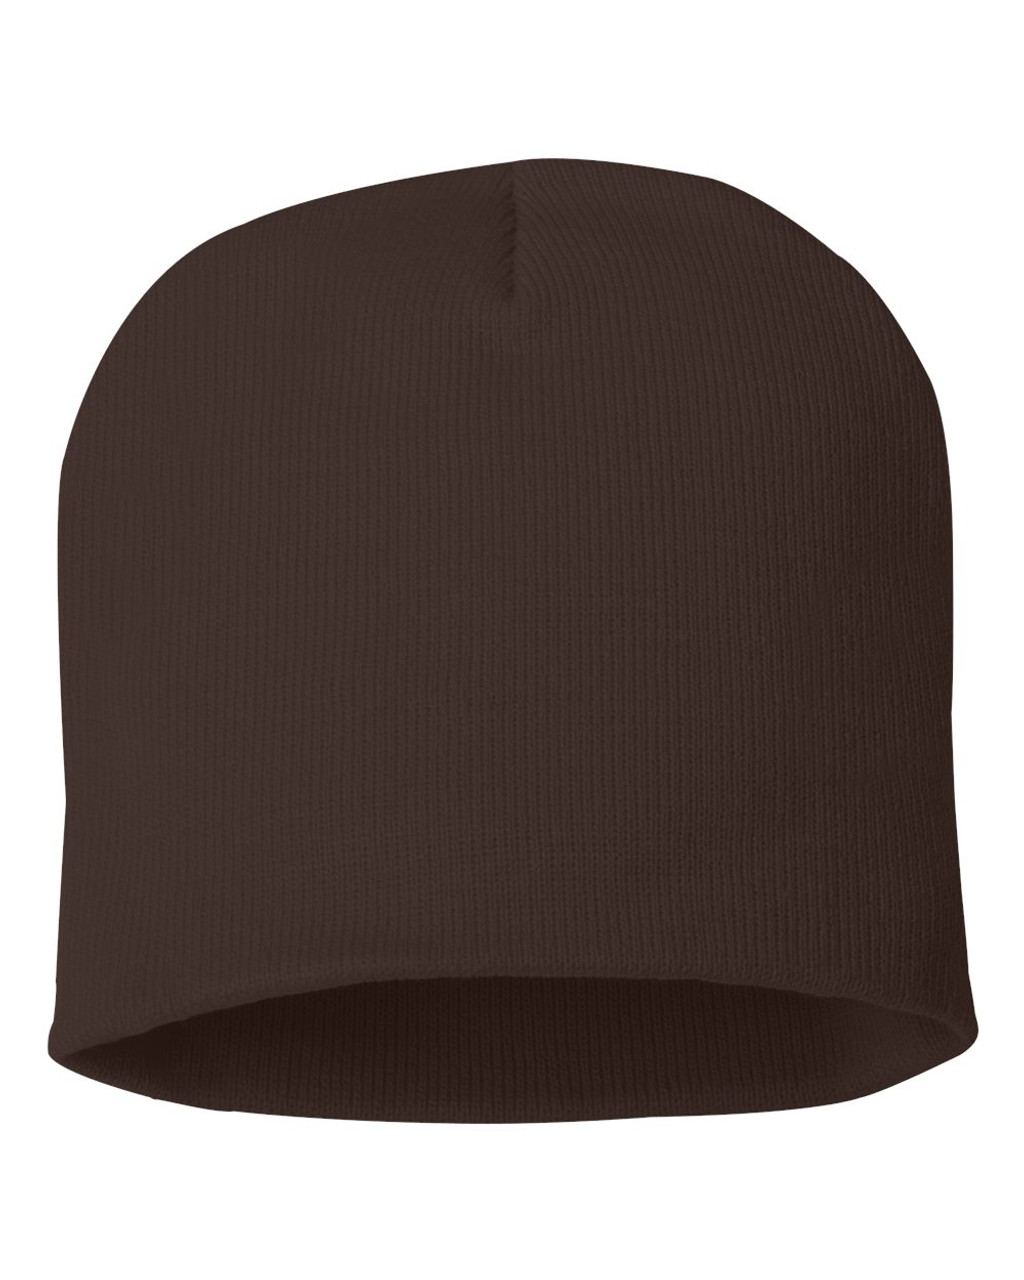 "Brown - SP08 Sportsman Acrylic Knit 8"" Toque 